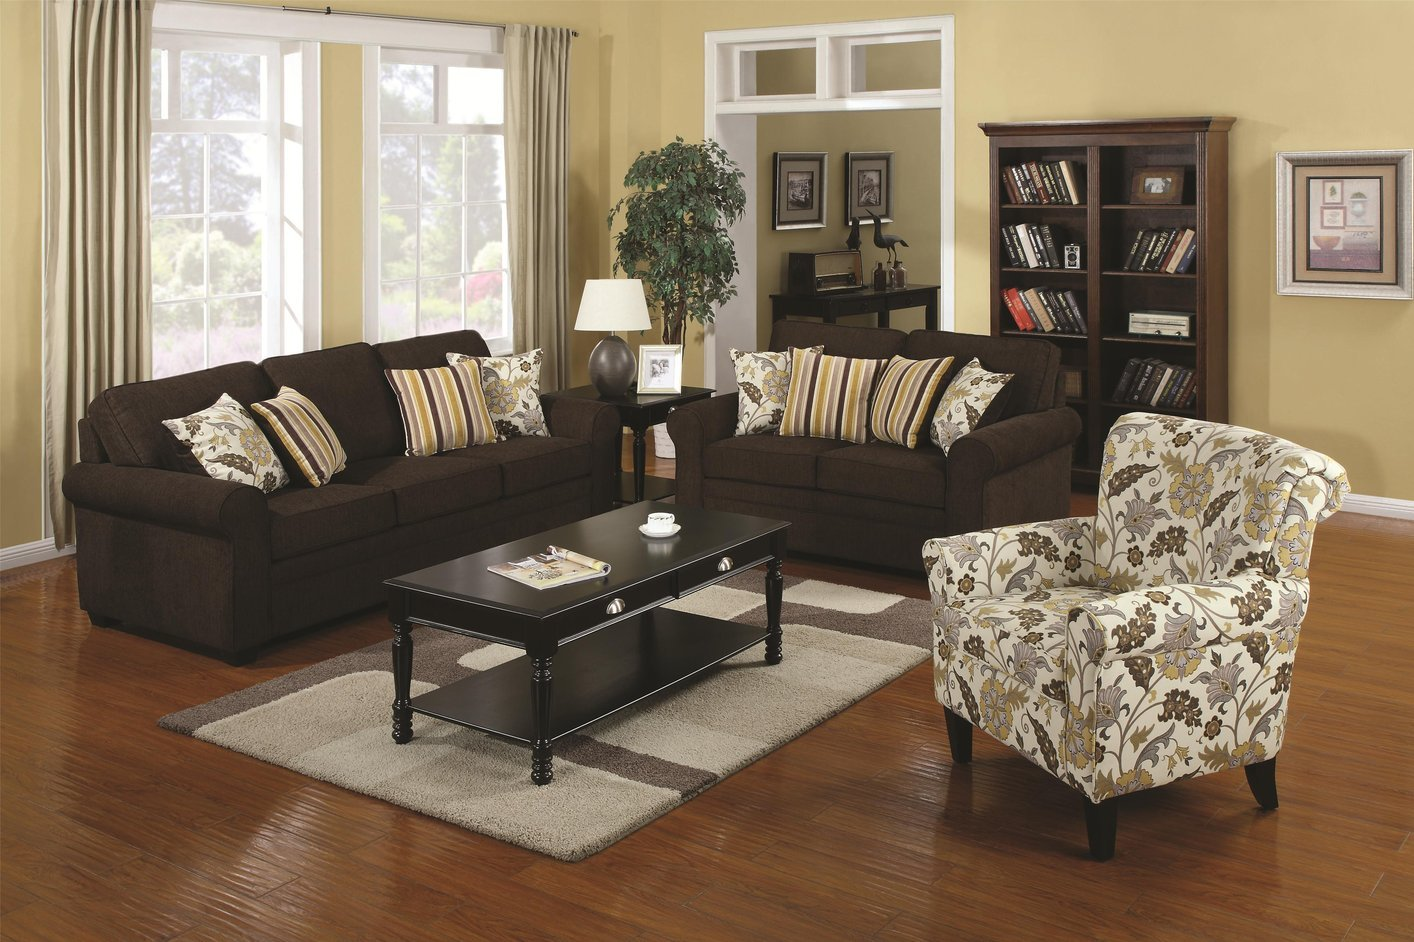 Coaster rosalie 504241 brown fabric sofa steal a sofa for Brown fabric couch